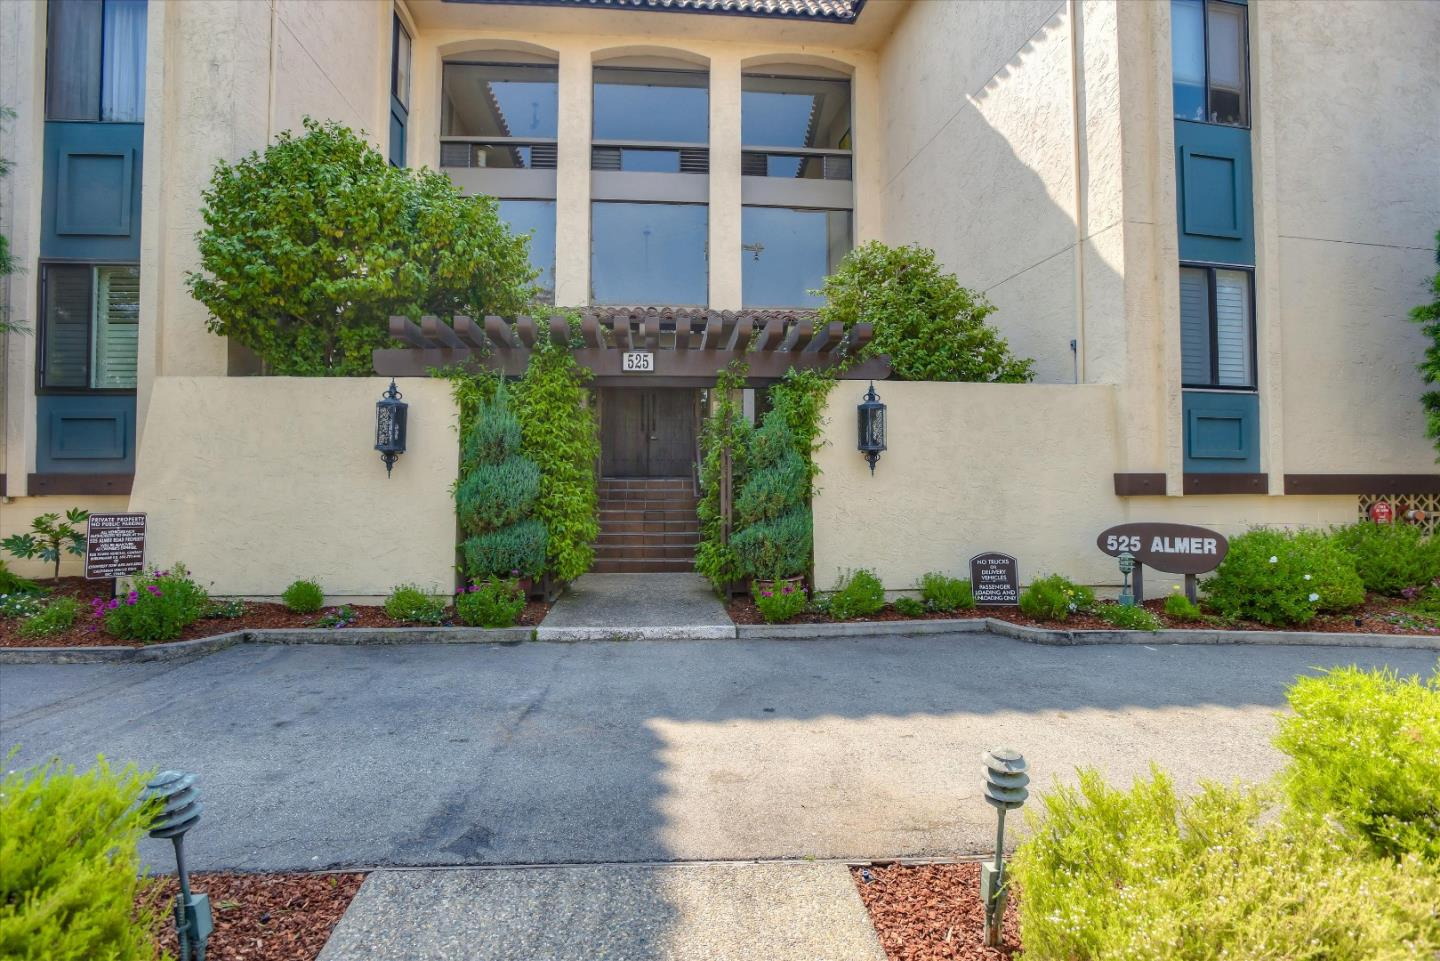 959 SF of spacious living in a highly desirable secure condo complex w/ great amenities! Close to Burlingame Ave; Top-floor, immaculate unit w/patio overlooking pool/BBQ. Quiet w/ only 1 shared wall; LR/DR combo offers high-ceiling, remote control ceiling fan & slider to freshly painted private patio; spacious bedroom w/ hi-ceiling & remote control ceiling fan + 2 closets; bath has separate vanity + shower over tub; bright kitchen w/ lots of cabinets, under-counter lights, refrigerator, electric stove & dishwasher; large storage closet in entry; easy access from secure garage w/ premium spot + elevator right to the unit; free laundry rm just down the hall; 2 generous storage closet - one on 3rd floor, one in garage; child play area, game room & fantastic workout rm; fresh paint, new light fixtures & ceiling fans 9/2020; near SFO, commuter corridors; train station, vibrant Burlingame Ave; great restaurants, shopping; quiet yet close to everything in the heart of Burlingame.